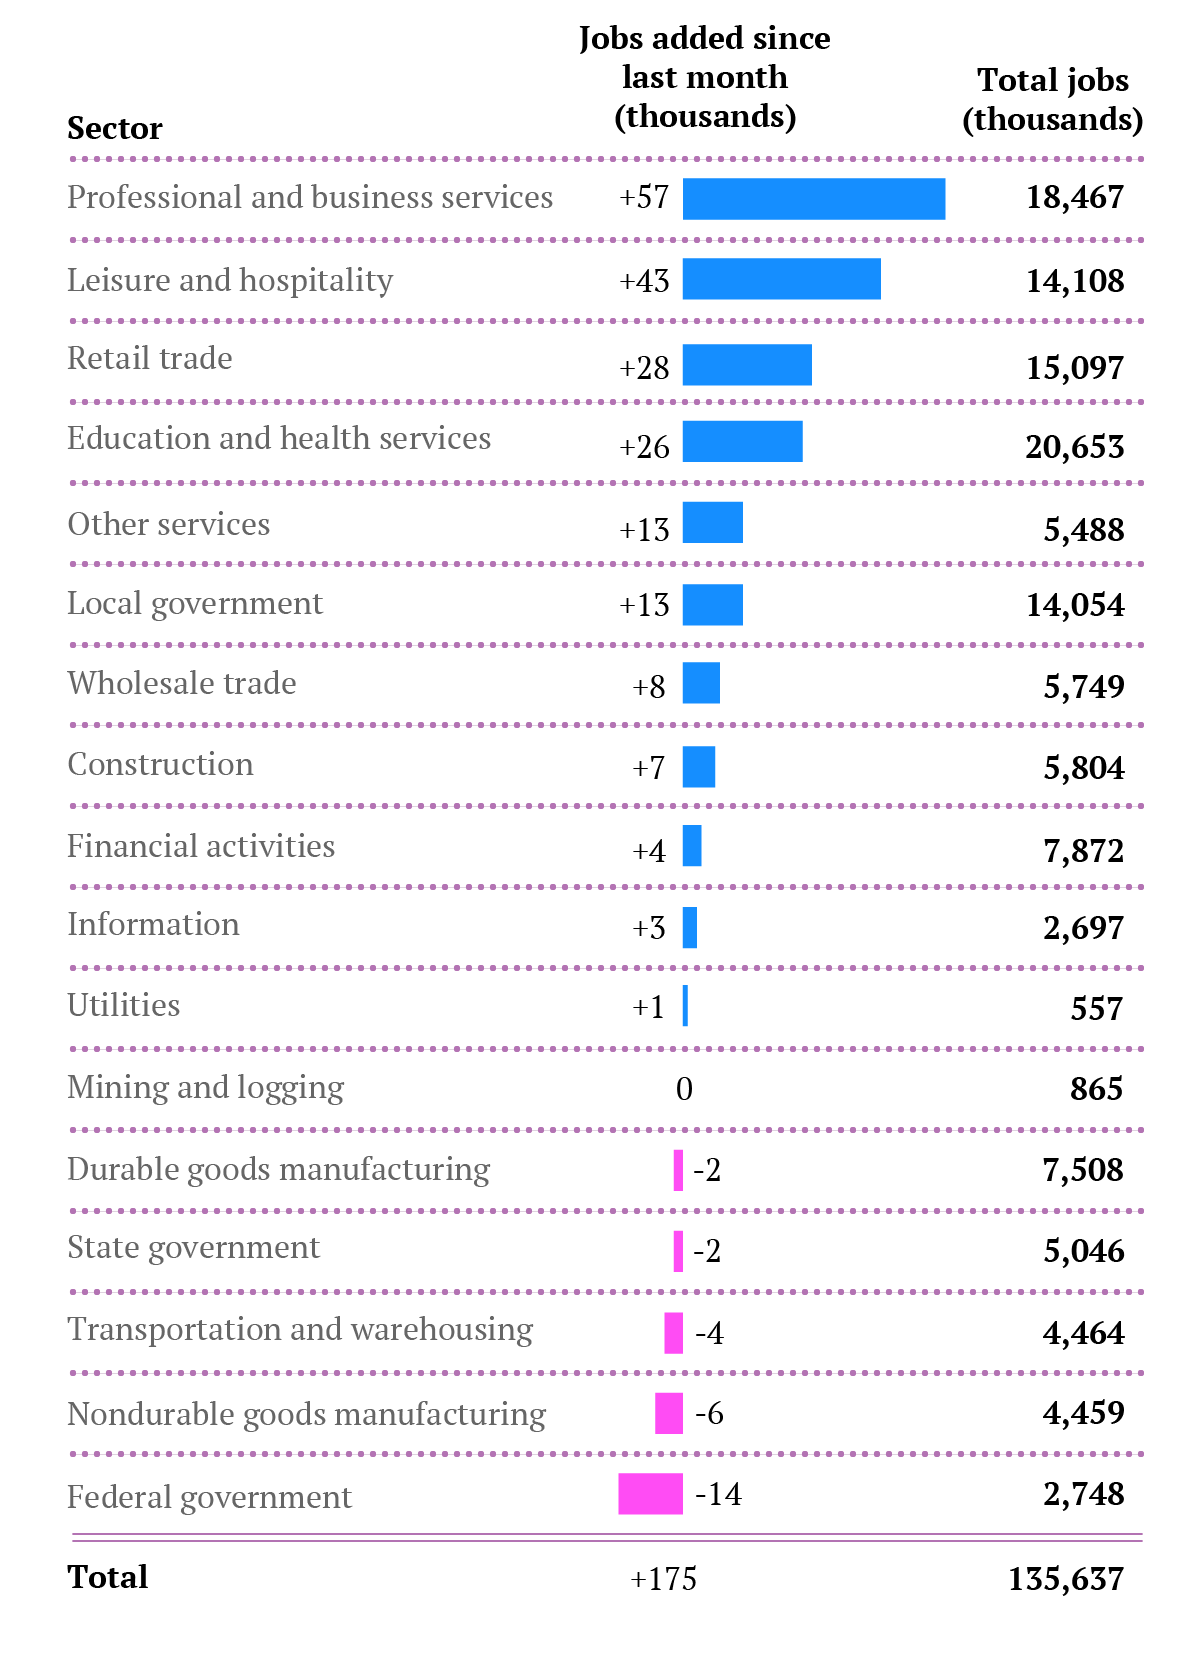 Jobs-by-sector-May13-2